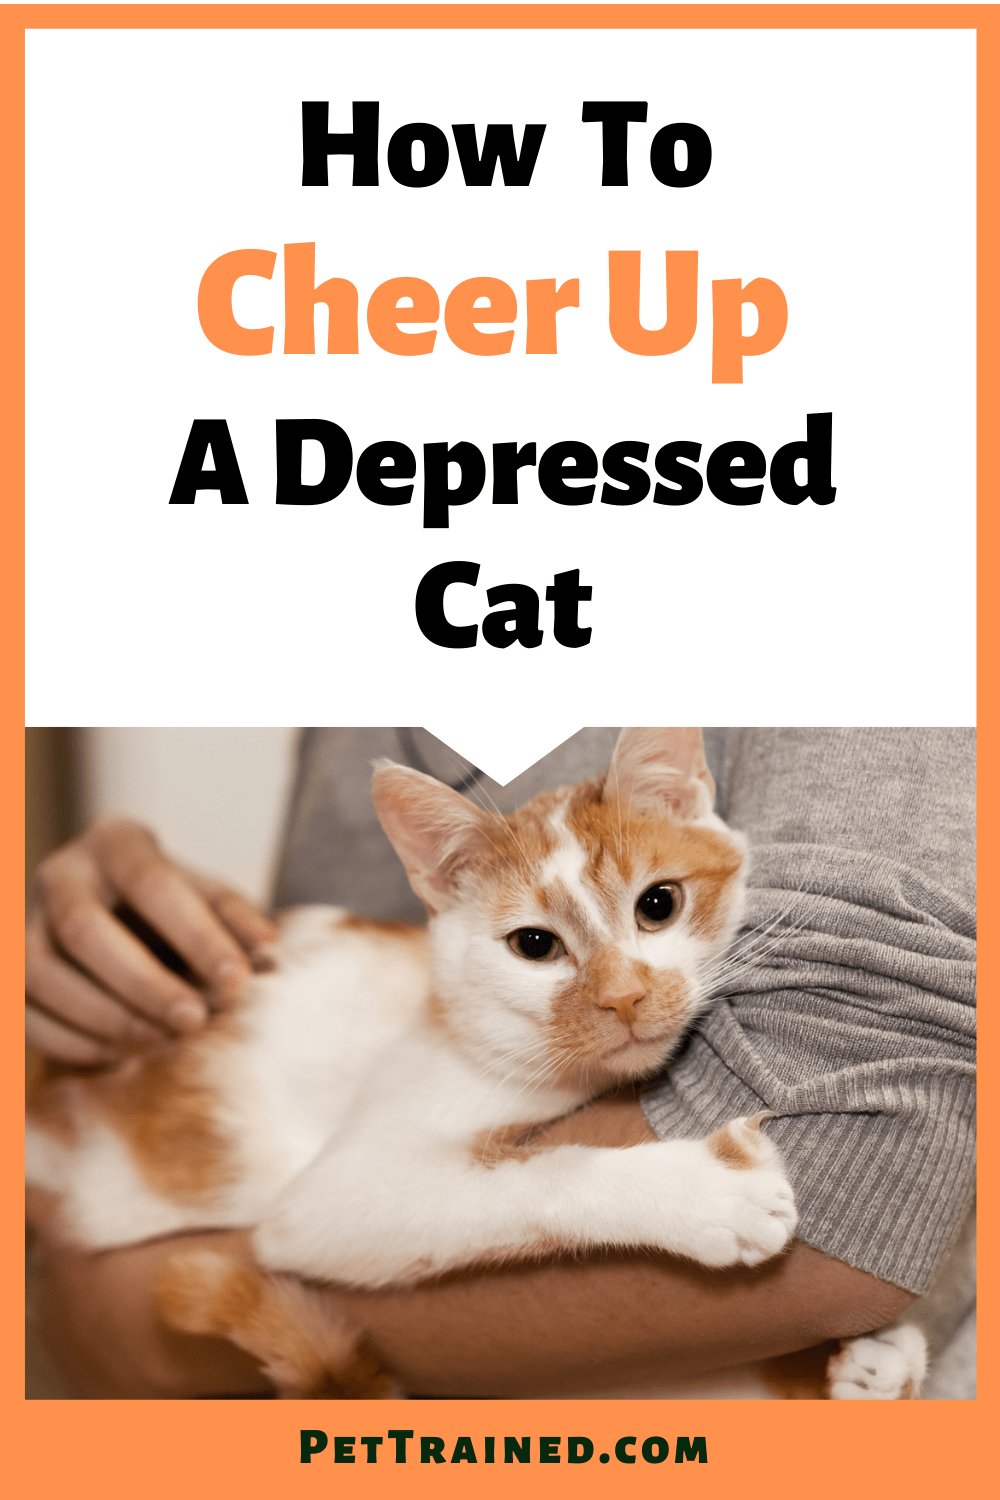 How to make a depressed cat happy